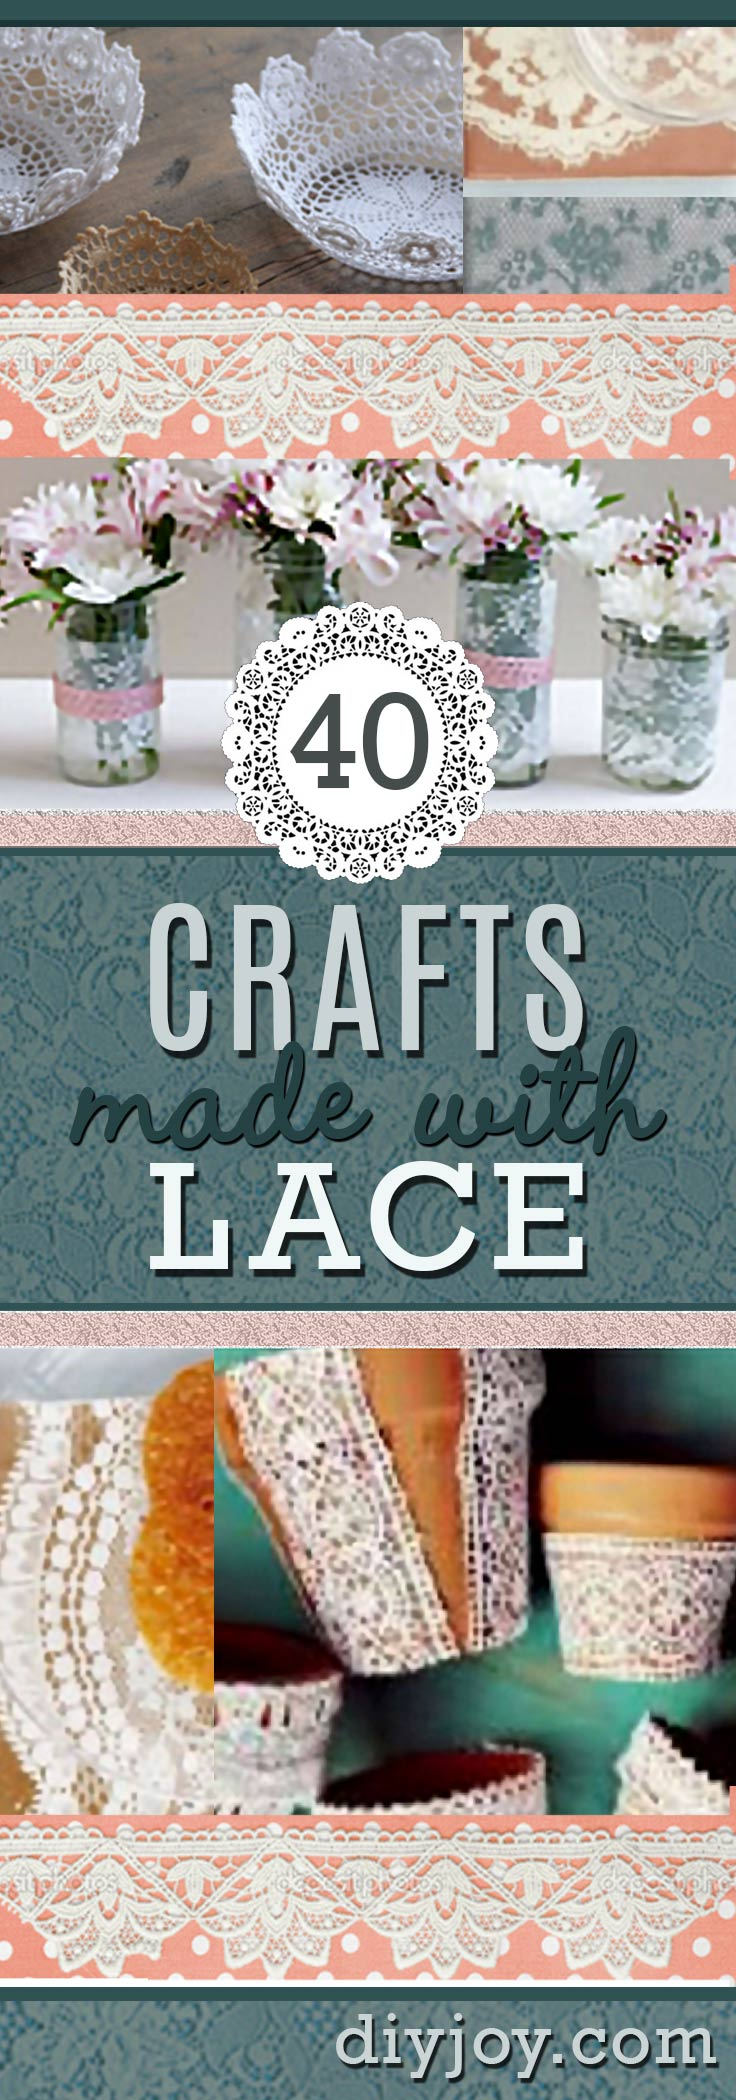 40 adorable diy projects with lace youll fall in love with diy projects made with lace solutioingenieria Images